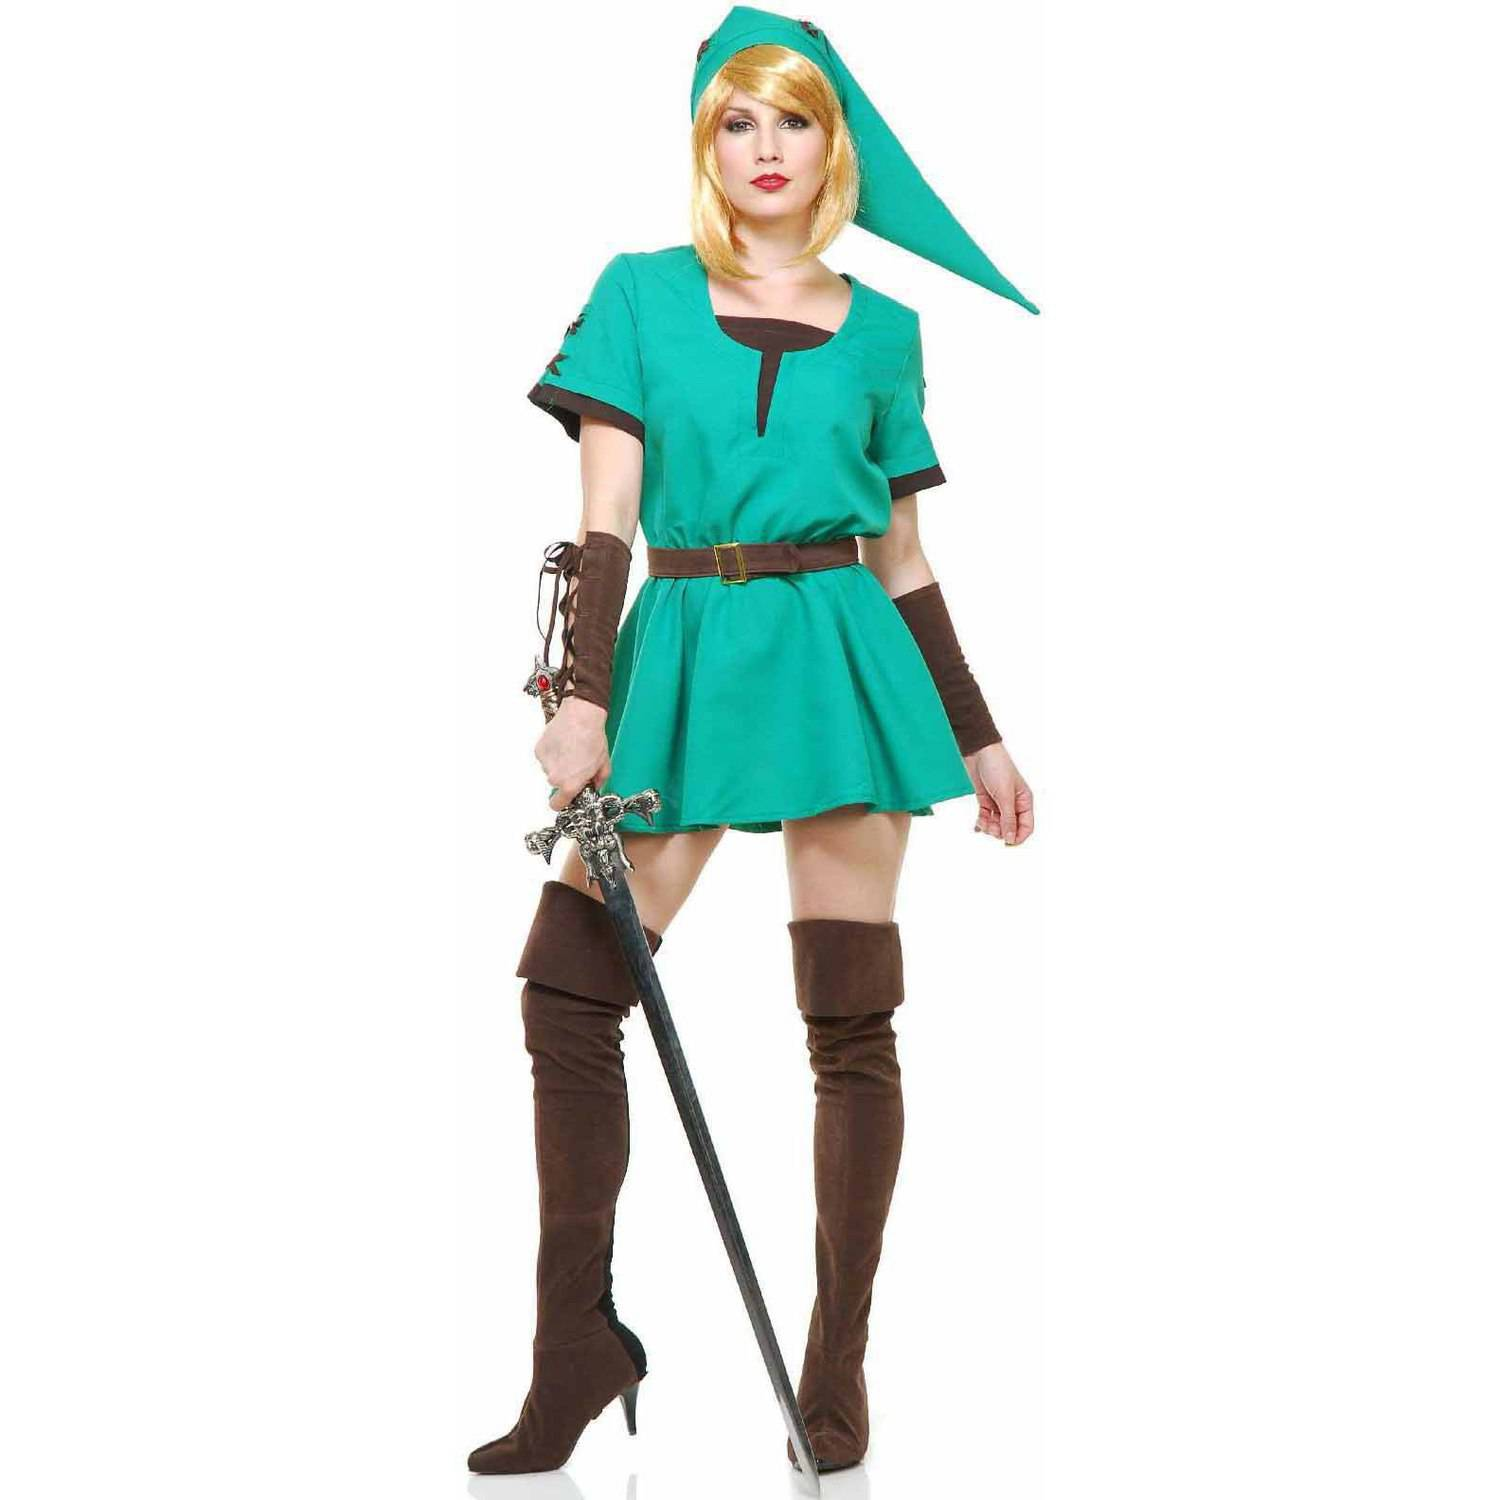 Elf Warrior Princess Dress Women's Adult Halloween Costume